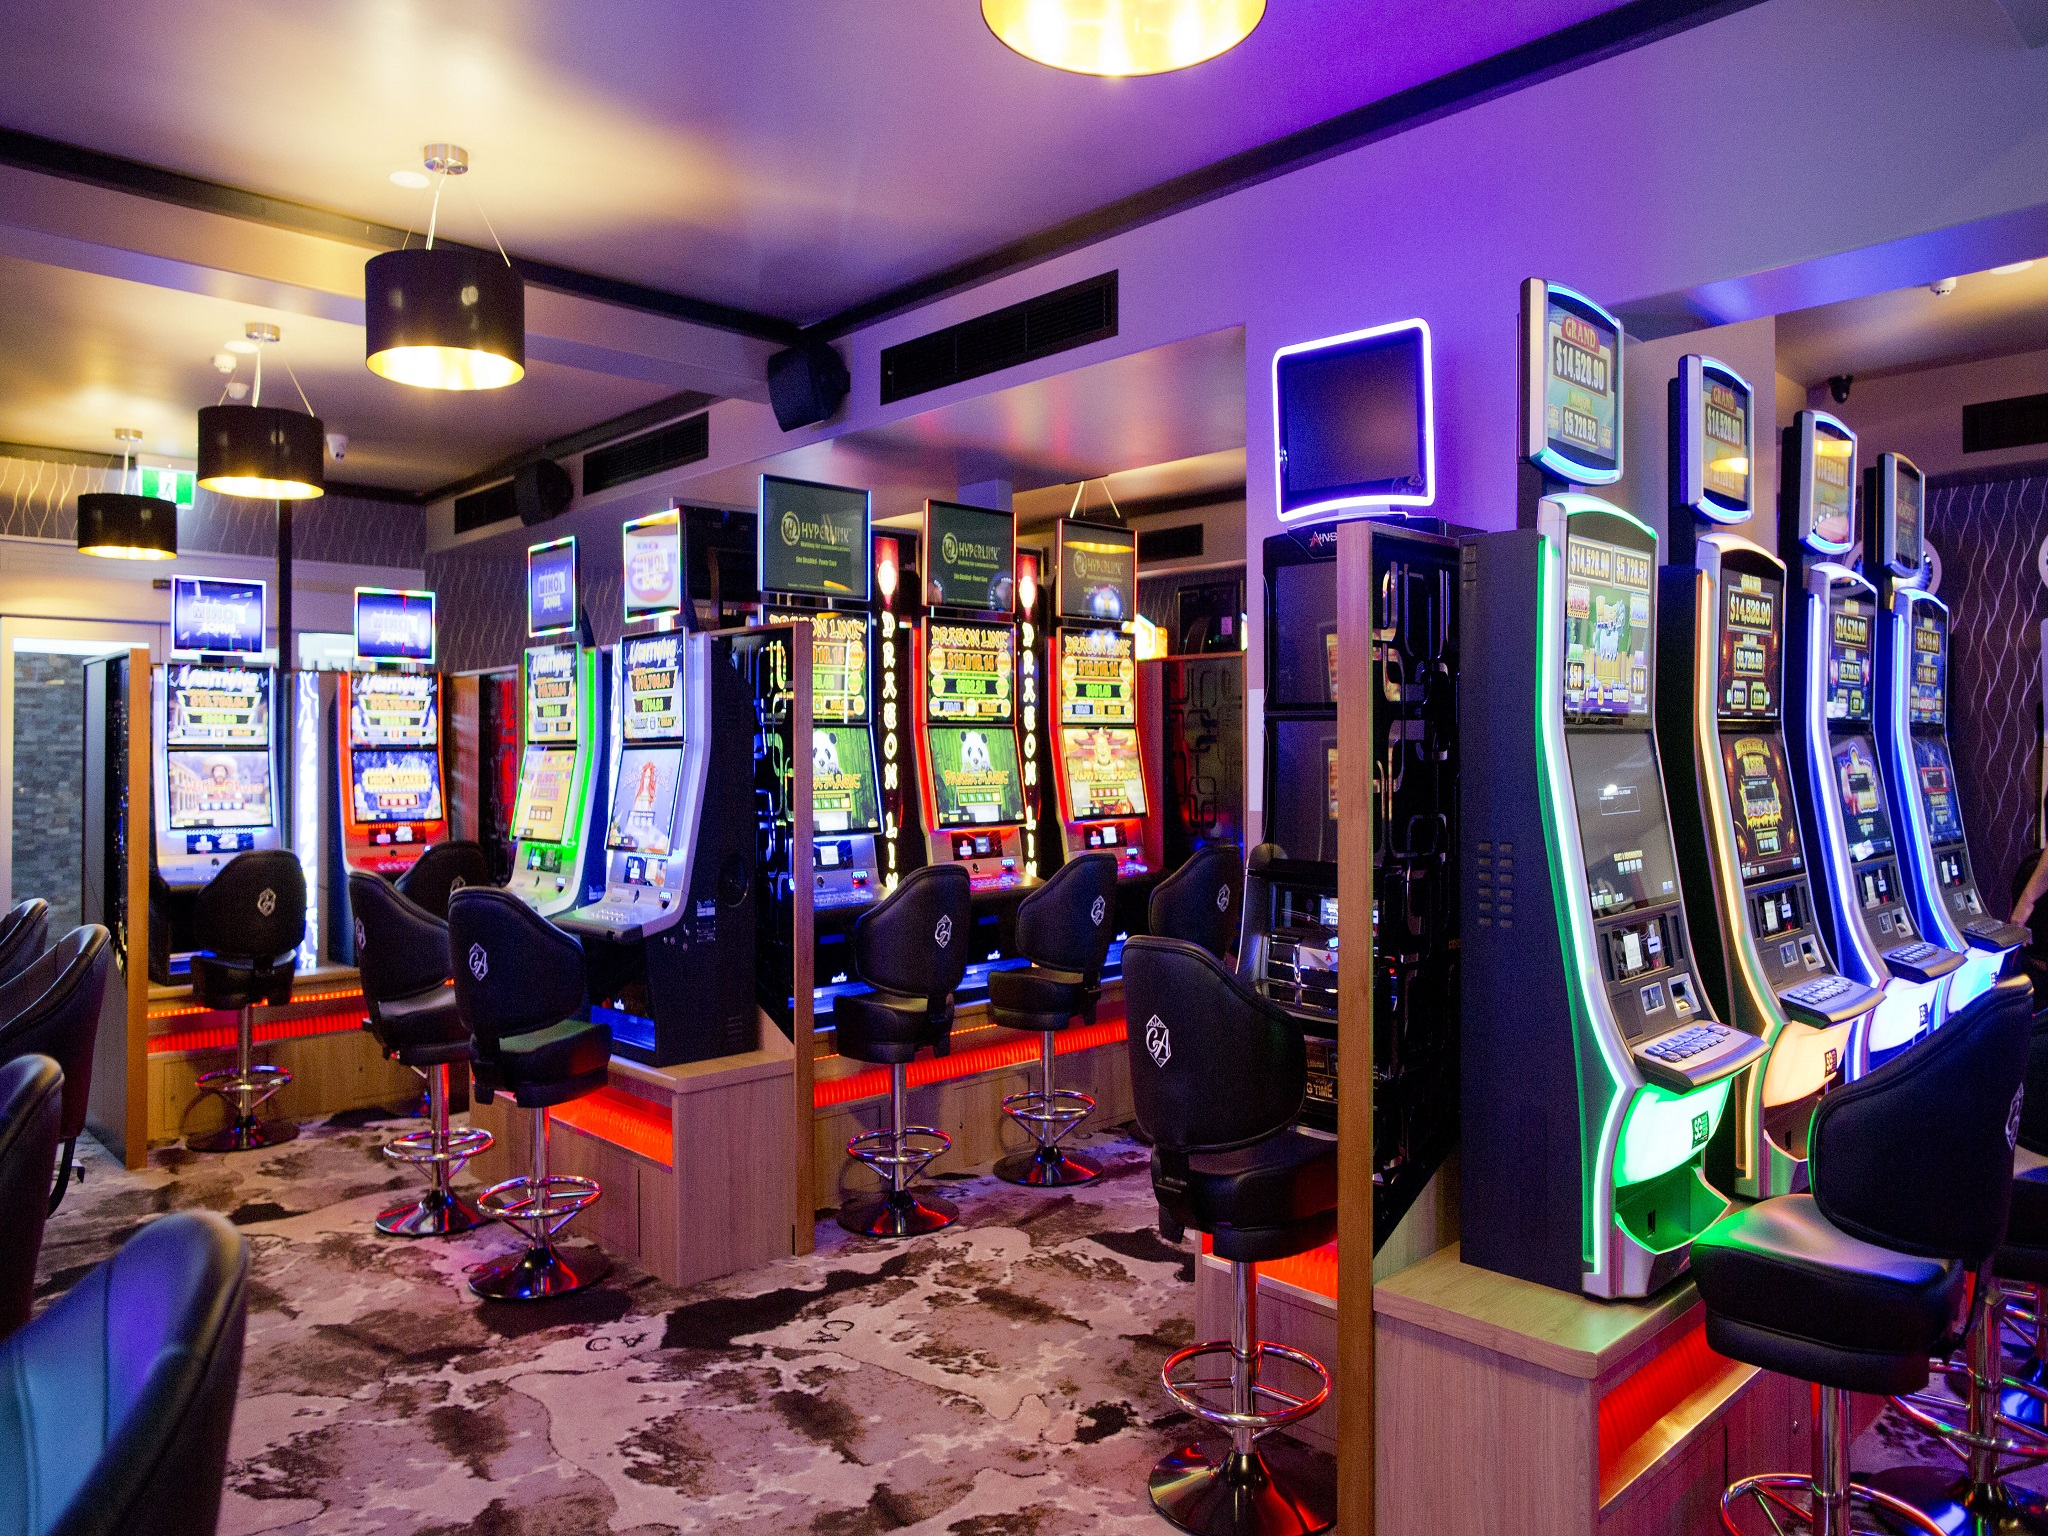 carriers-arms-gaming-room